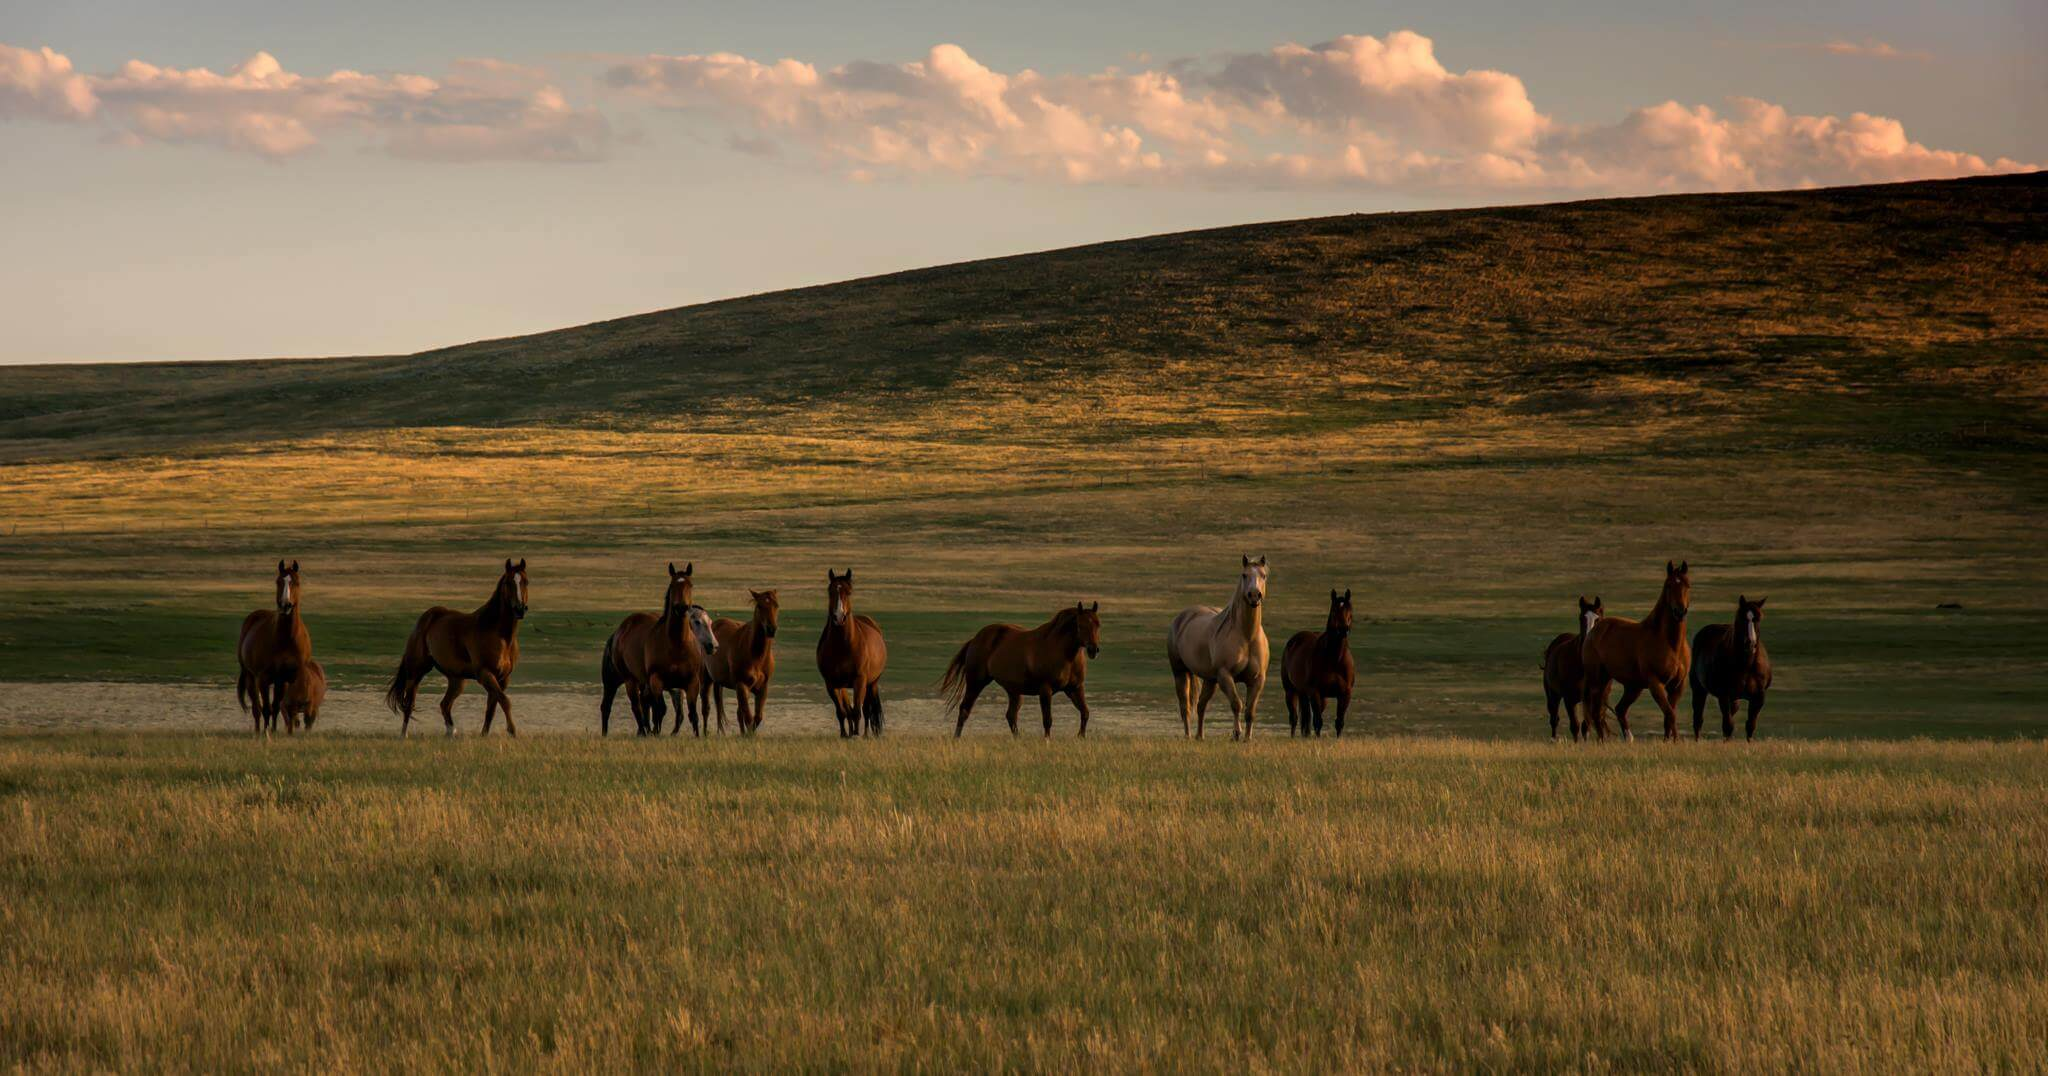 Horses in North Eastern, New Mexico - Photo by Tom H